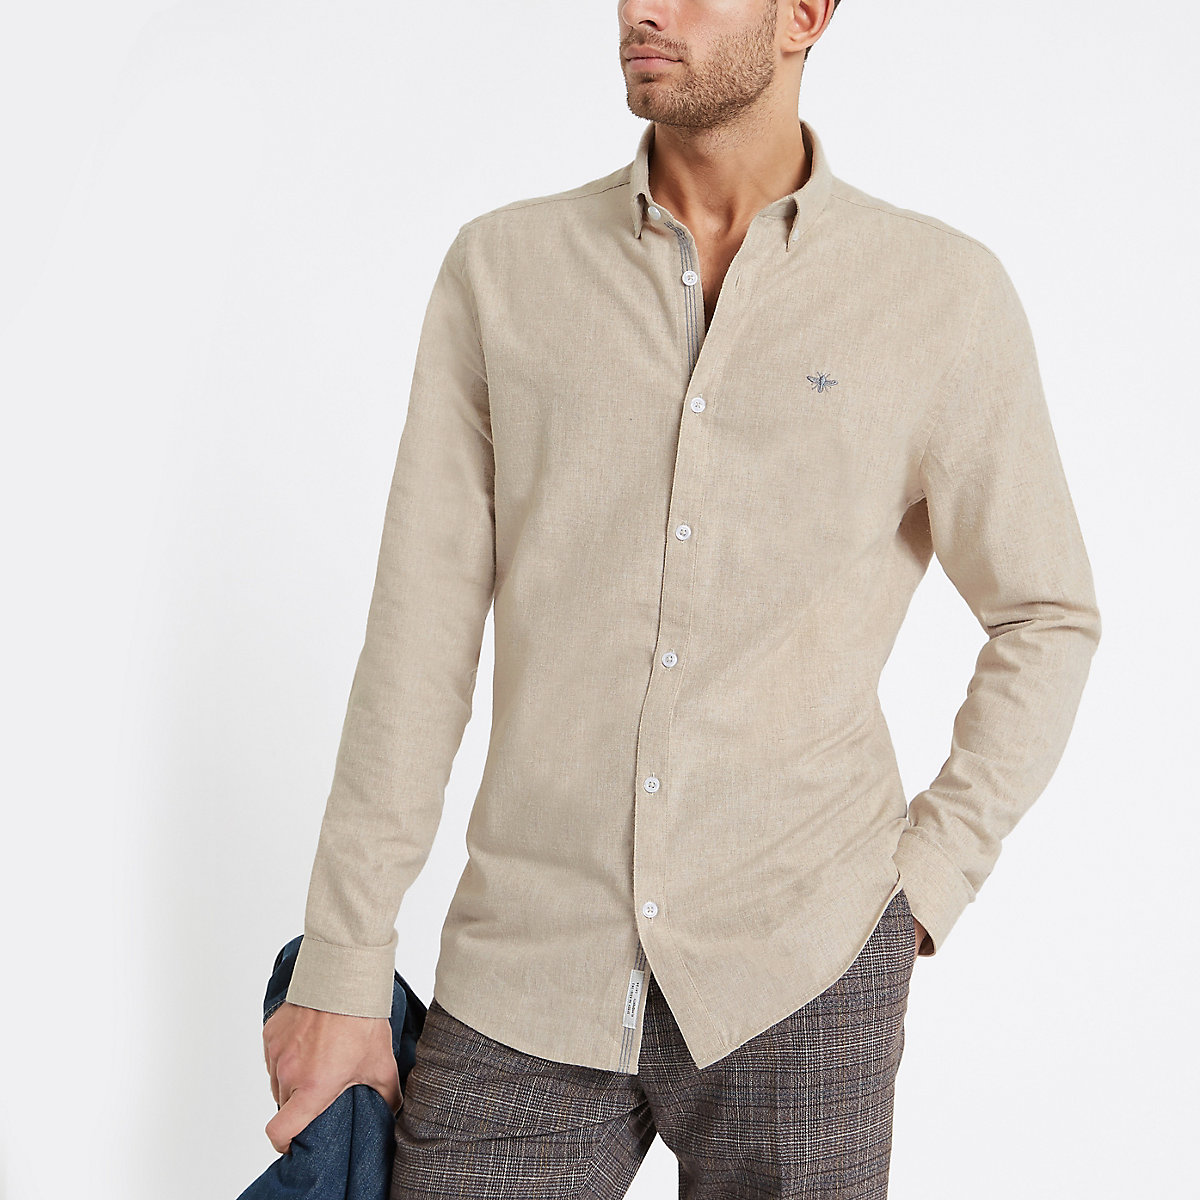 Stone wasp embroidered long sleeve shirt